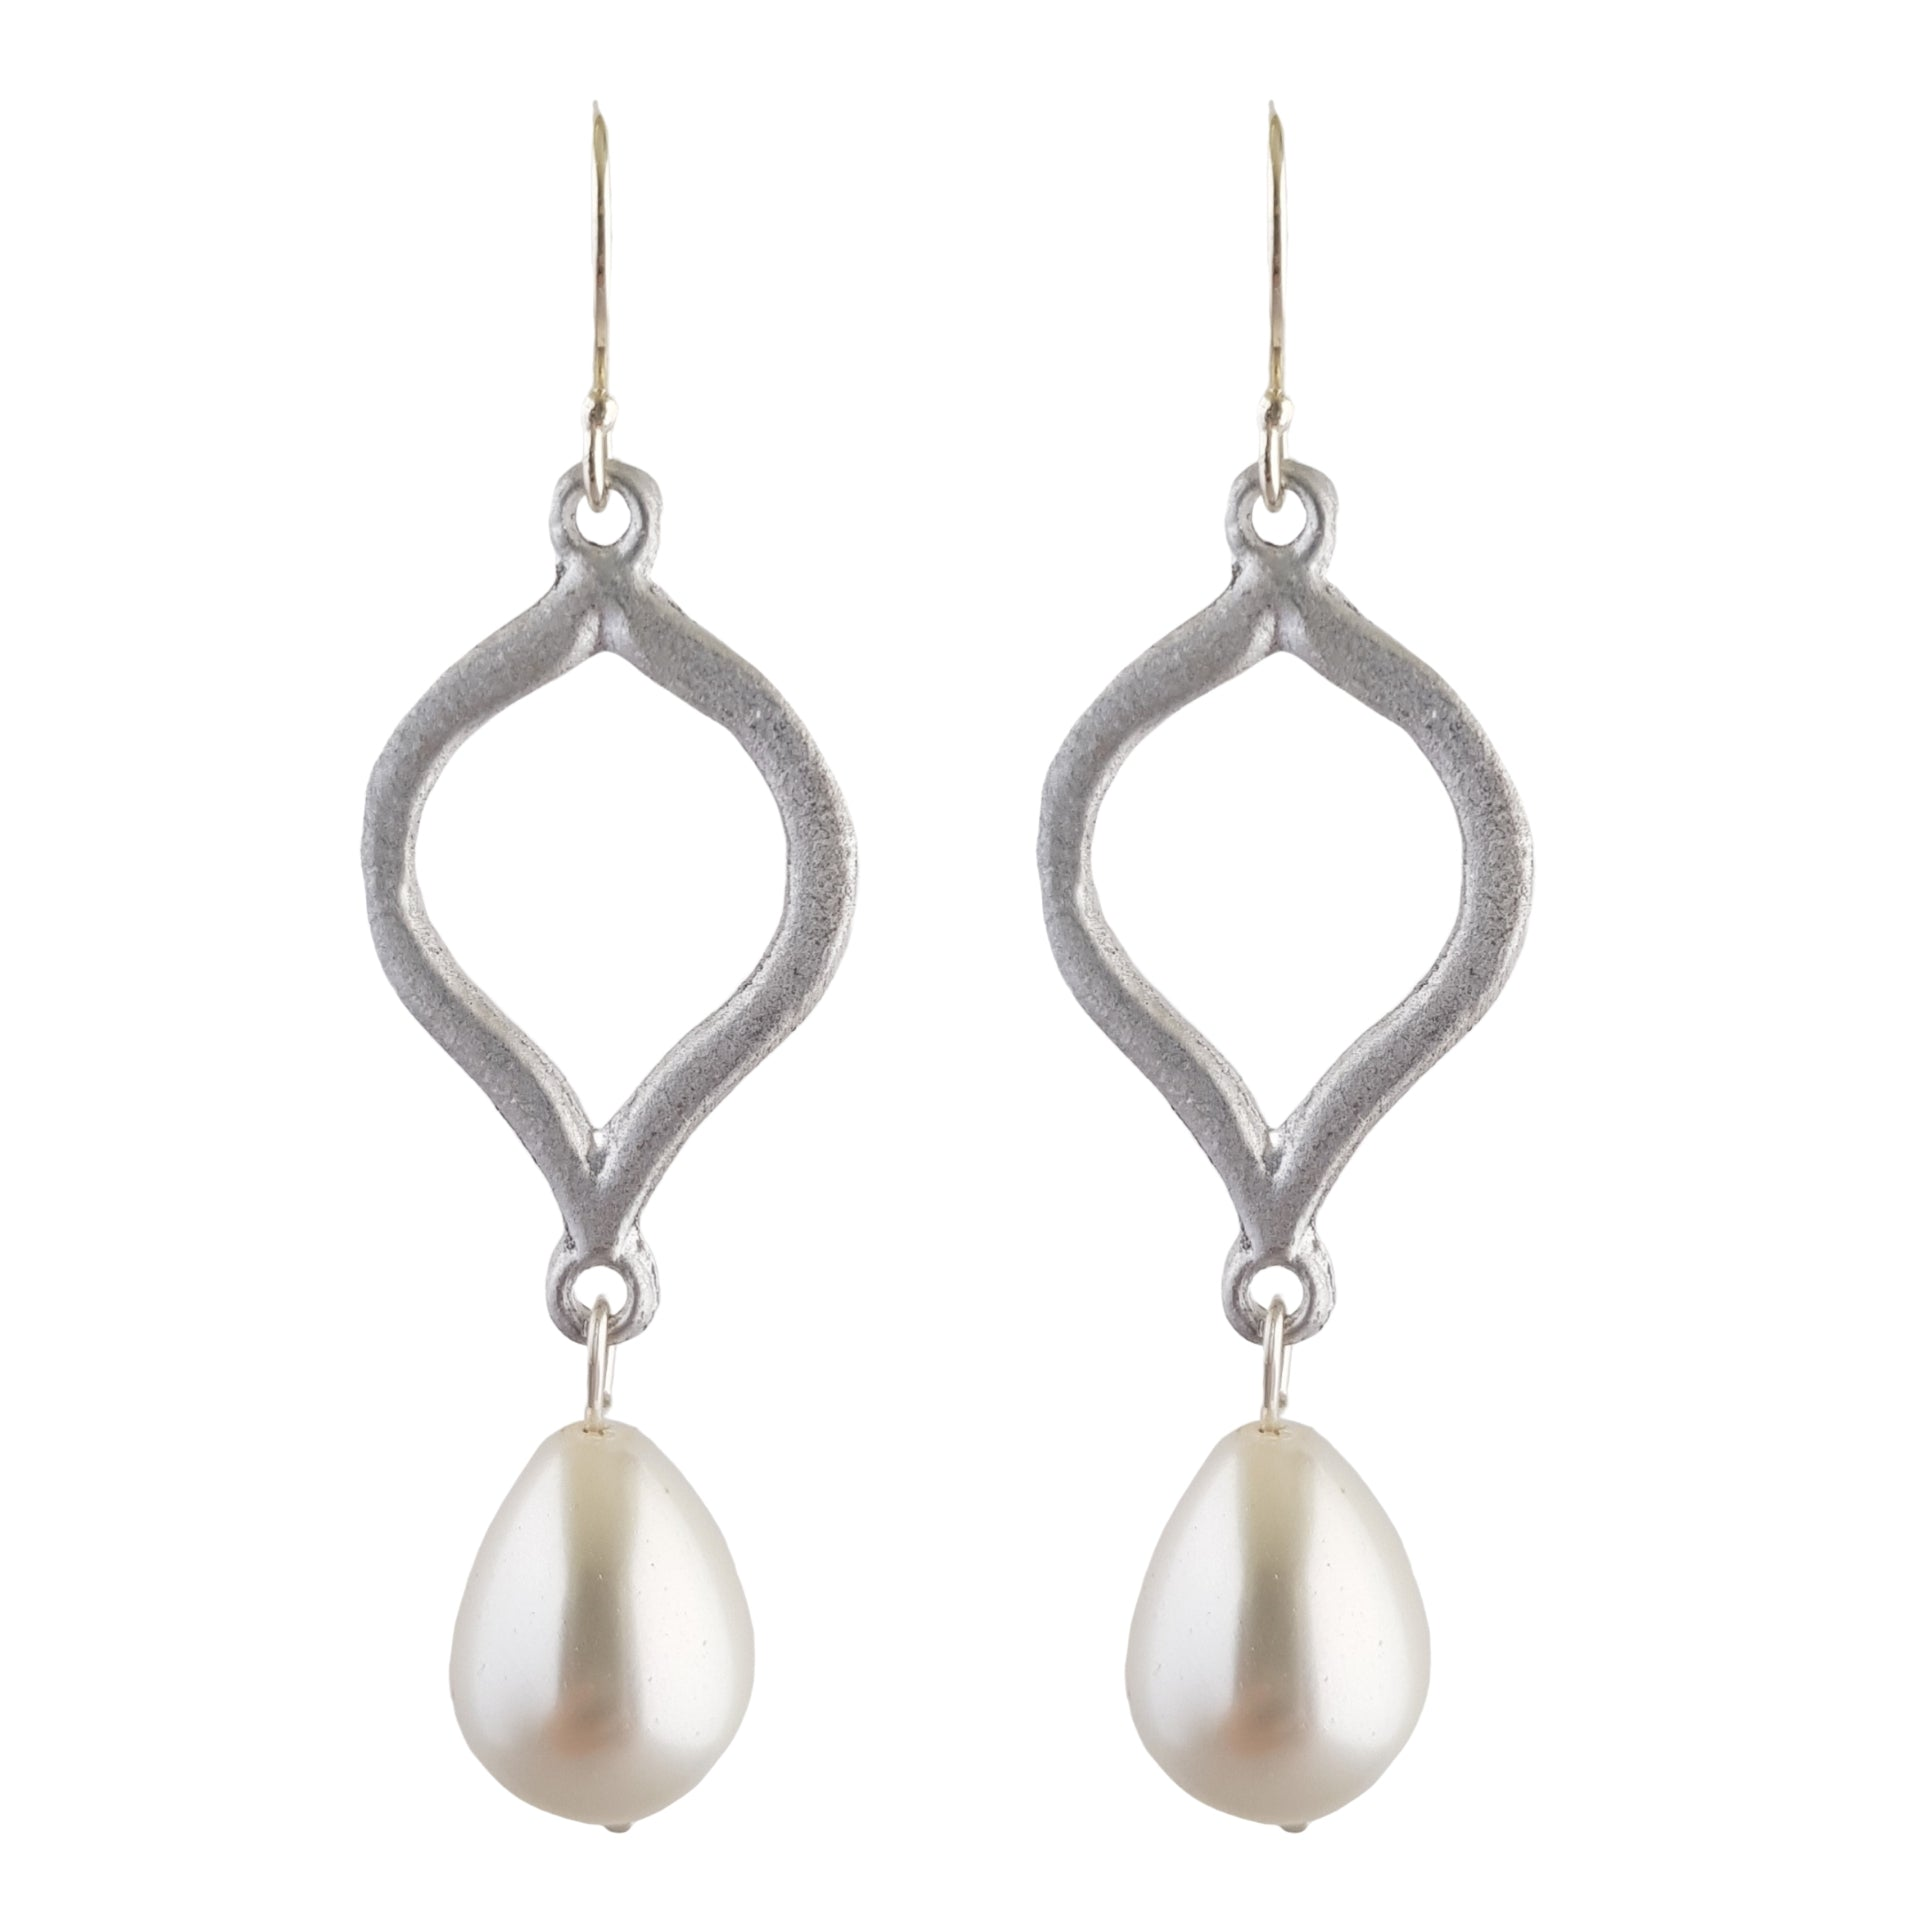 LOVEbomb Flame White Pearl Drop Earrings on Sterling Silver Hooks